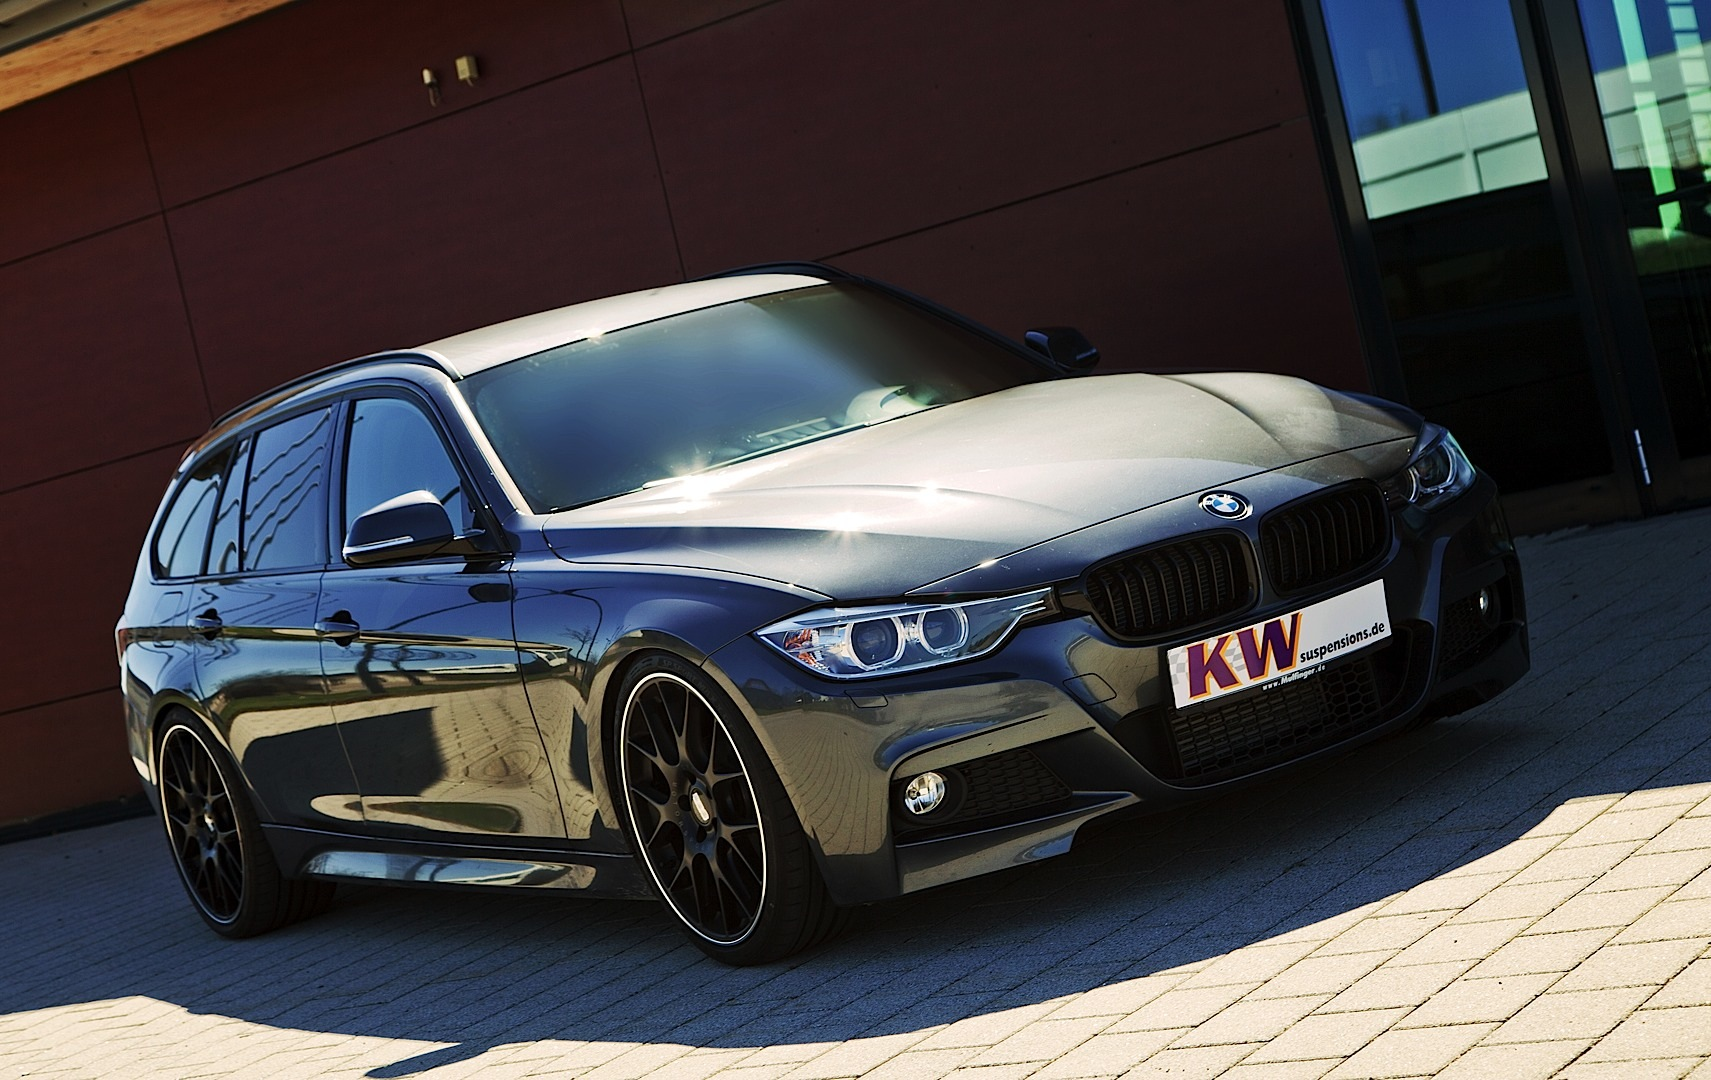 Kw Lowering Suspension For Bmw 3 Series Xdrive Autoevolution